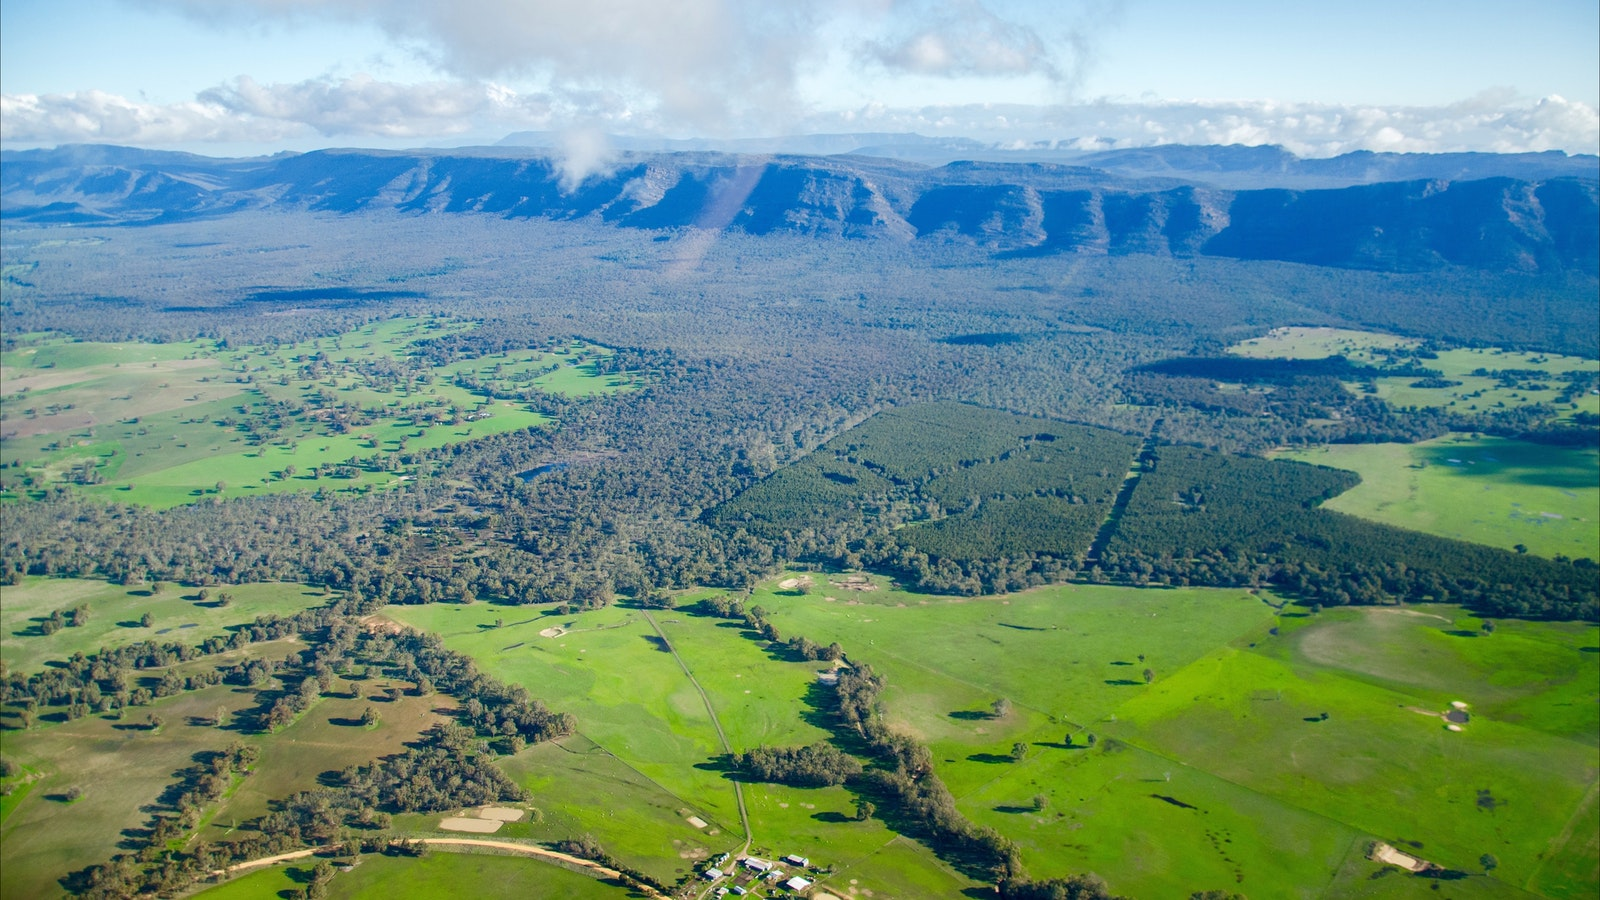 View from Grampians Helicopters tour